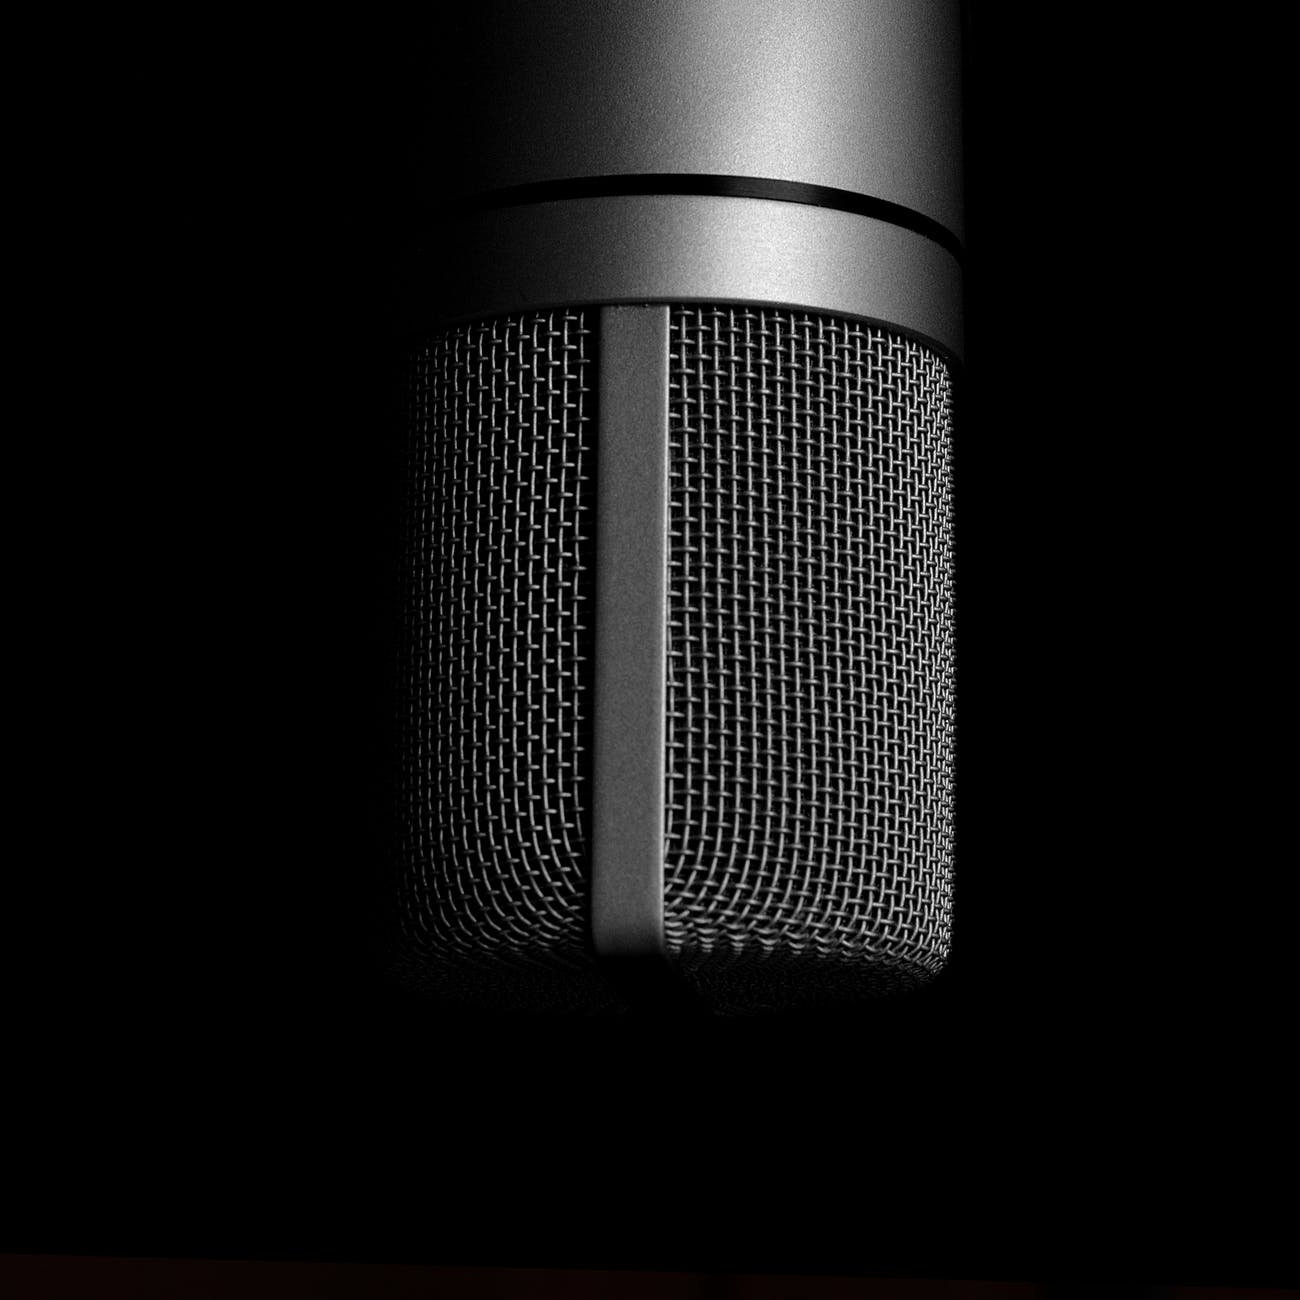 grey condenser microphone close up photography